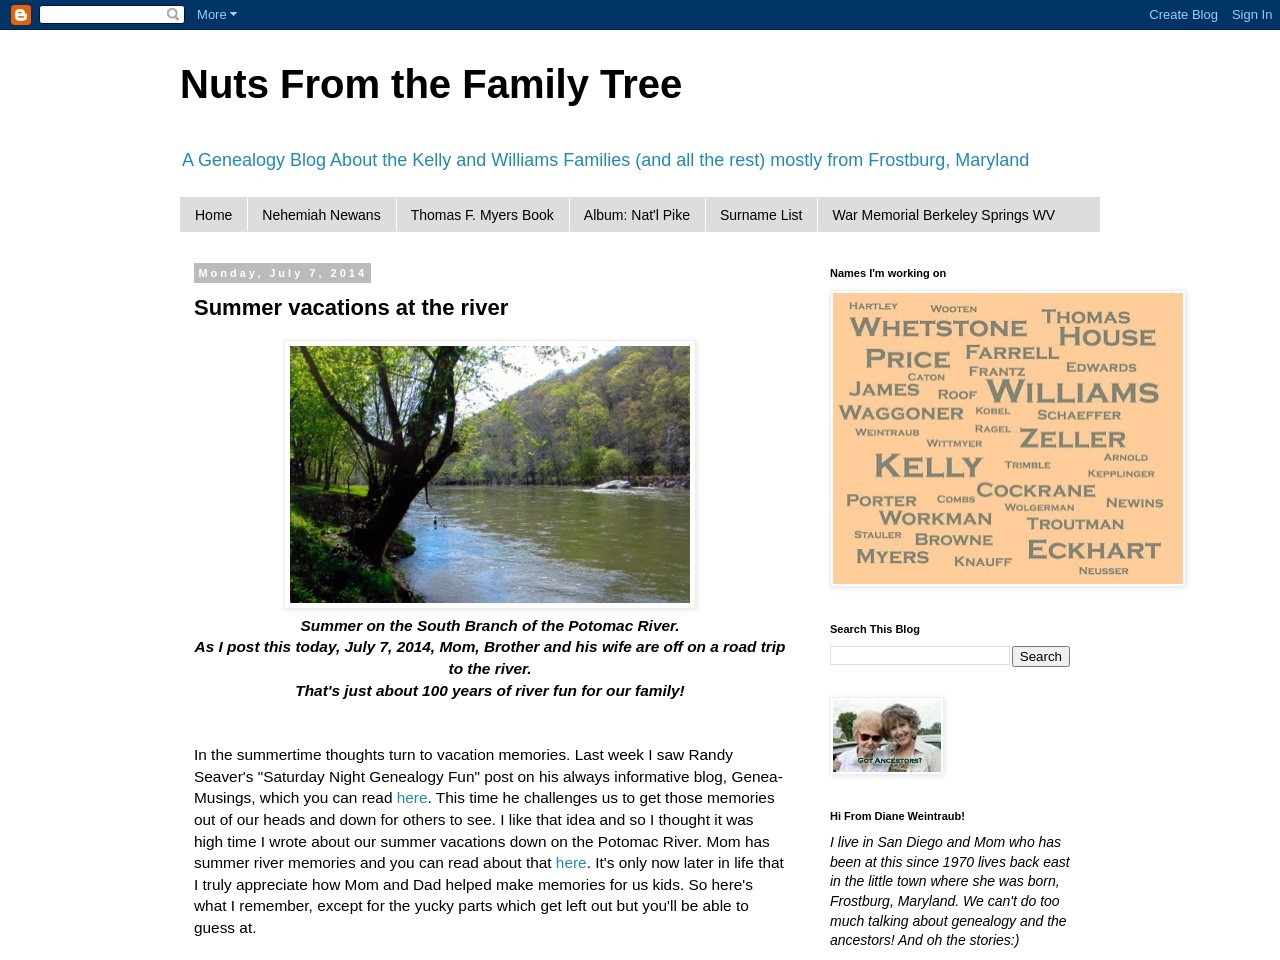 Nuts From the Family Tree: Summer Vacations at the river